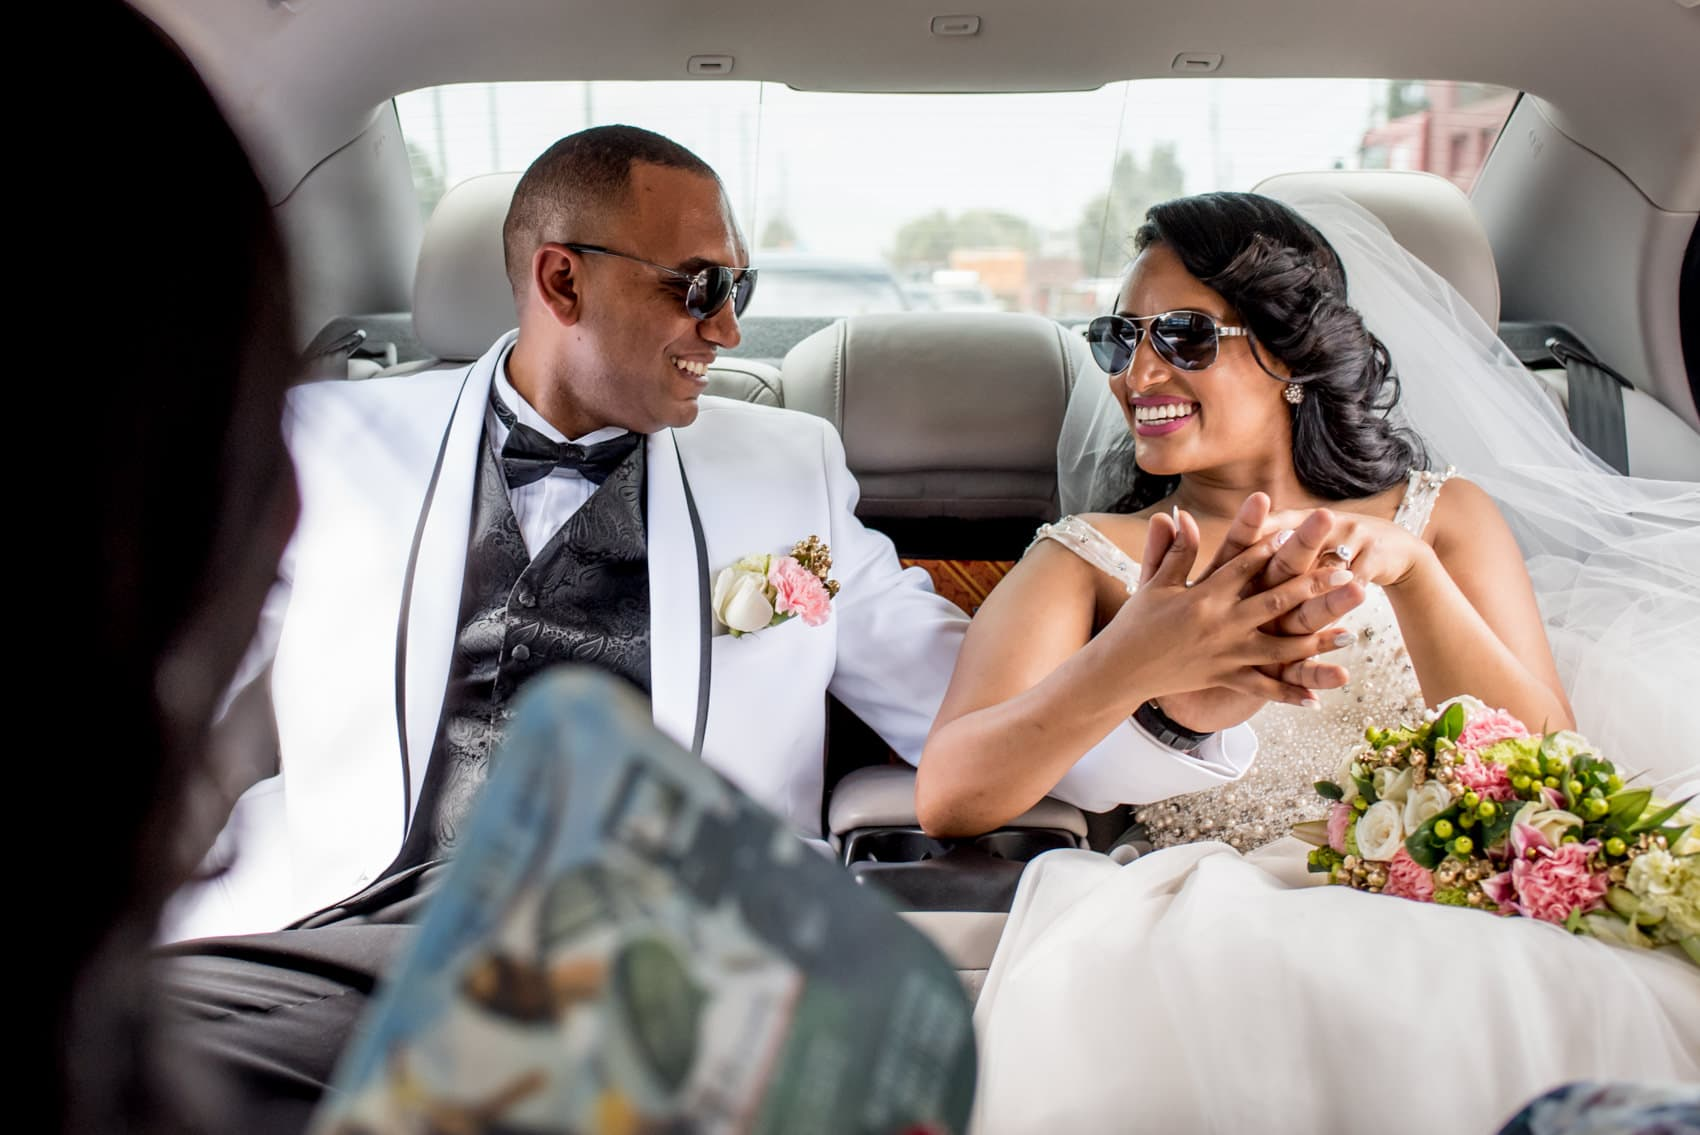 Ethiopian bride and groom in a limo